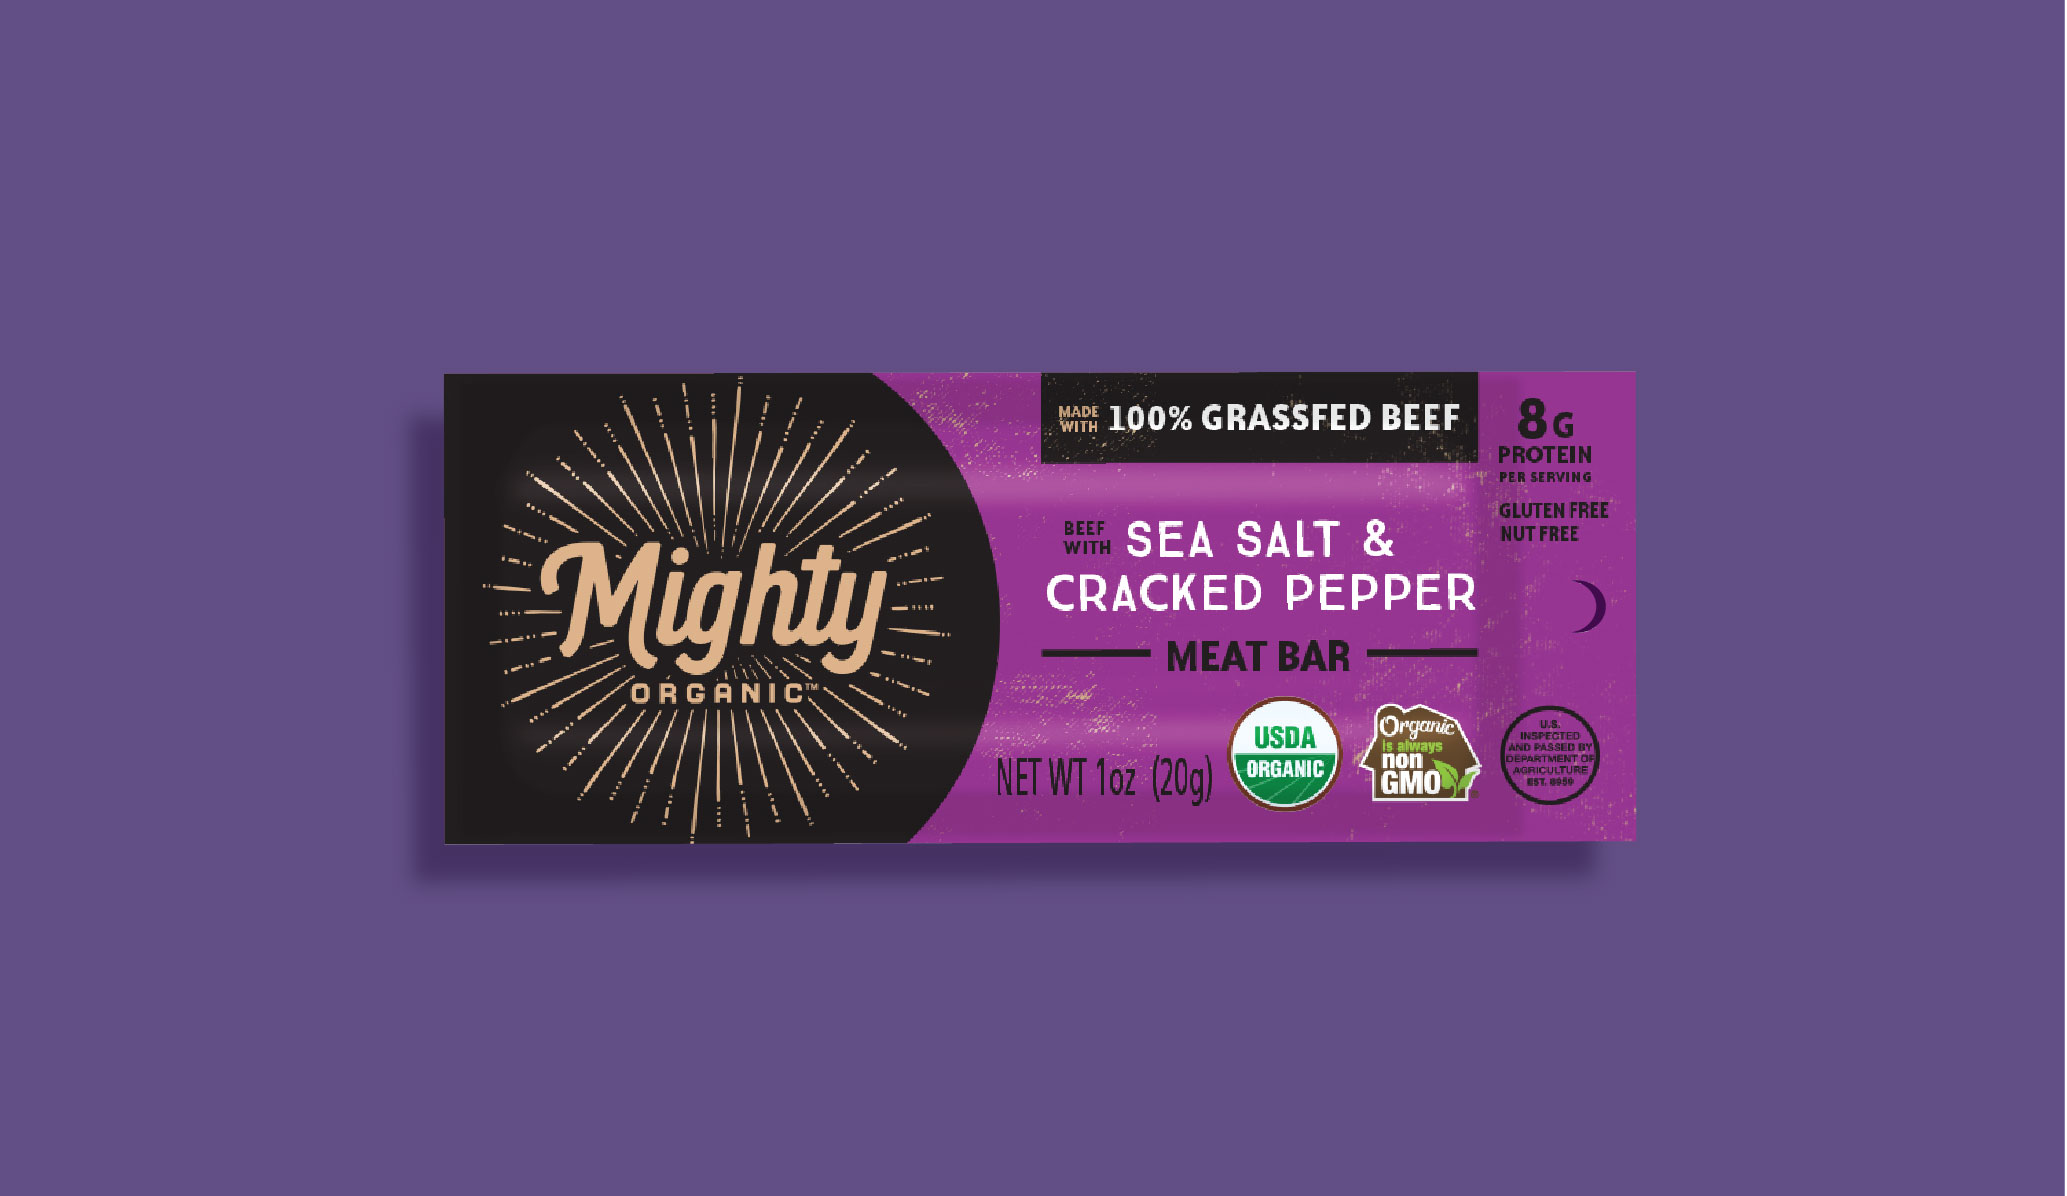 Mighty_beefbar_purple-10.jpg